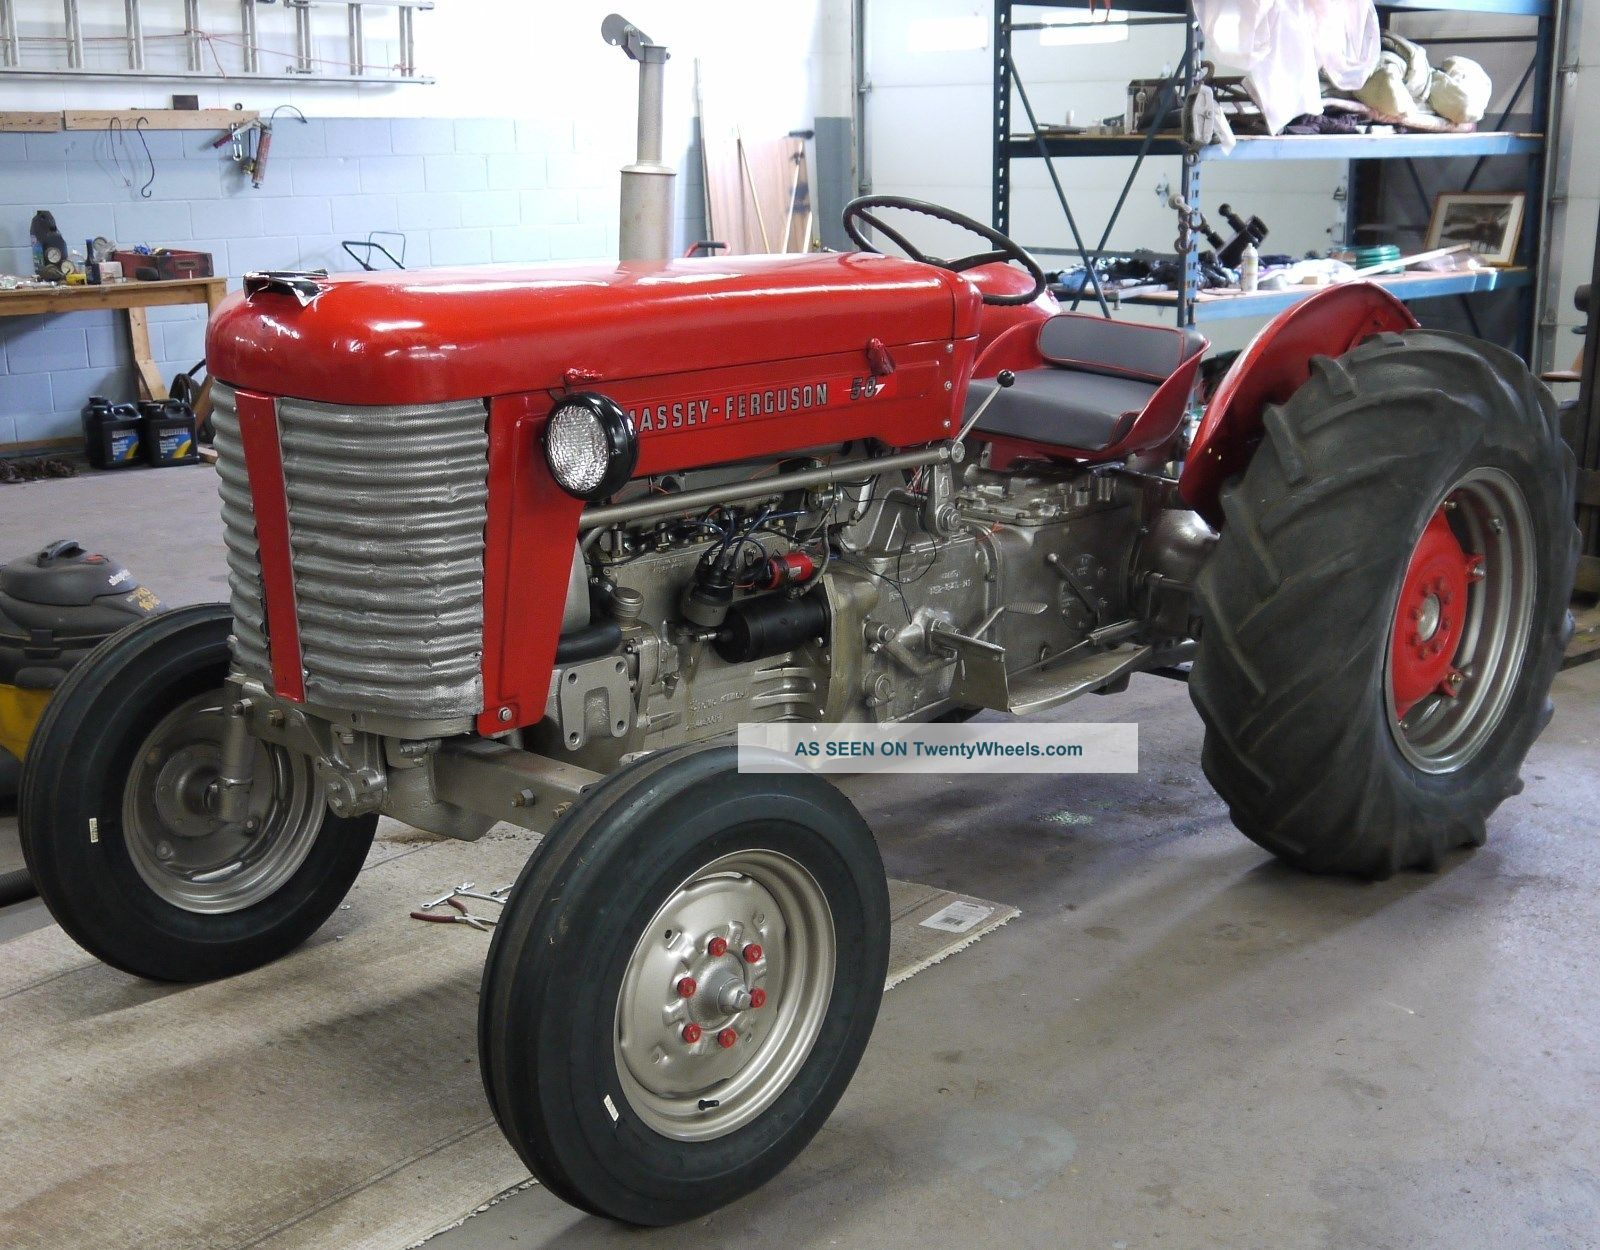 1956 Massey Ferguson 40 Tractor : Massey ferguson tractor pictures to pin on pinterest